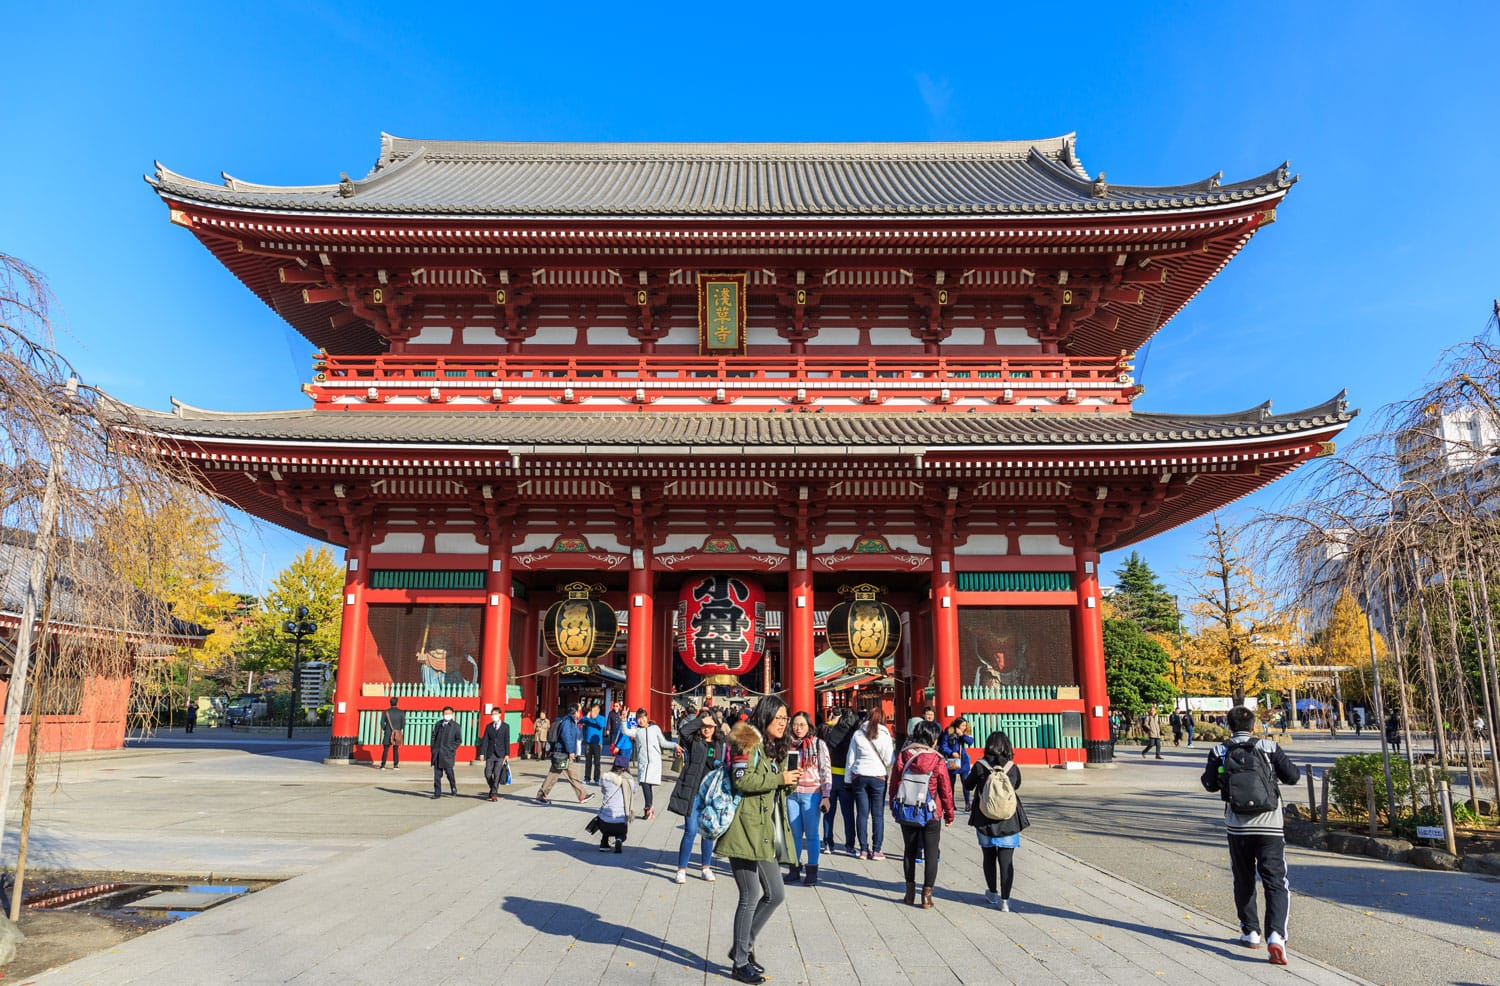 The Senso-ji Buddhist Temple in Japan